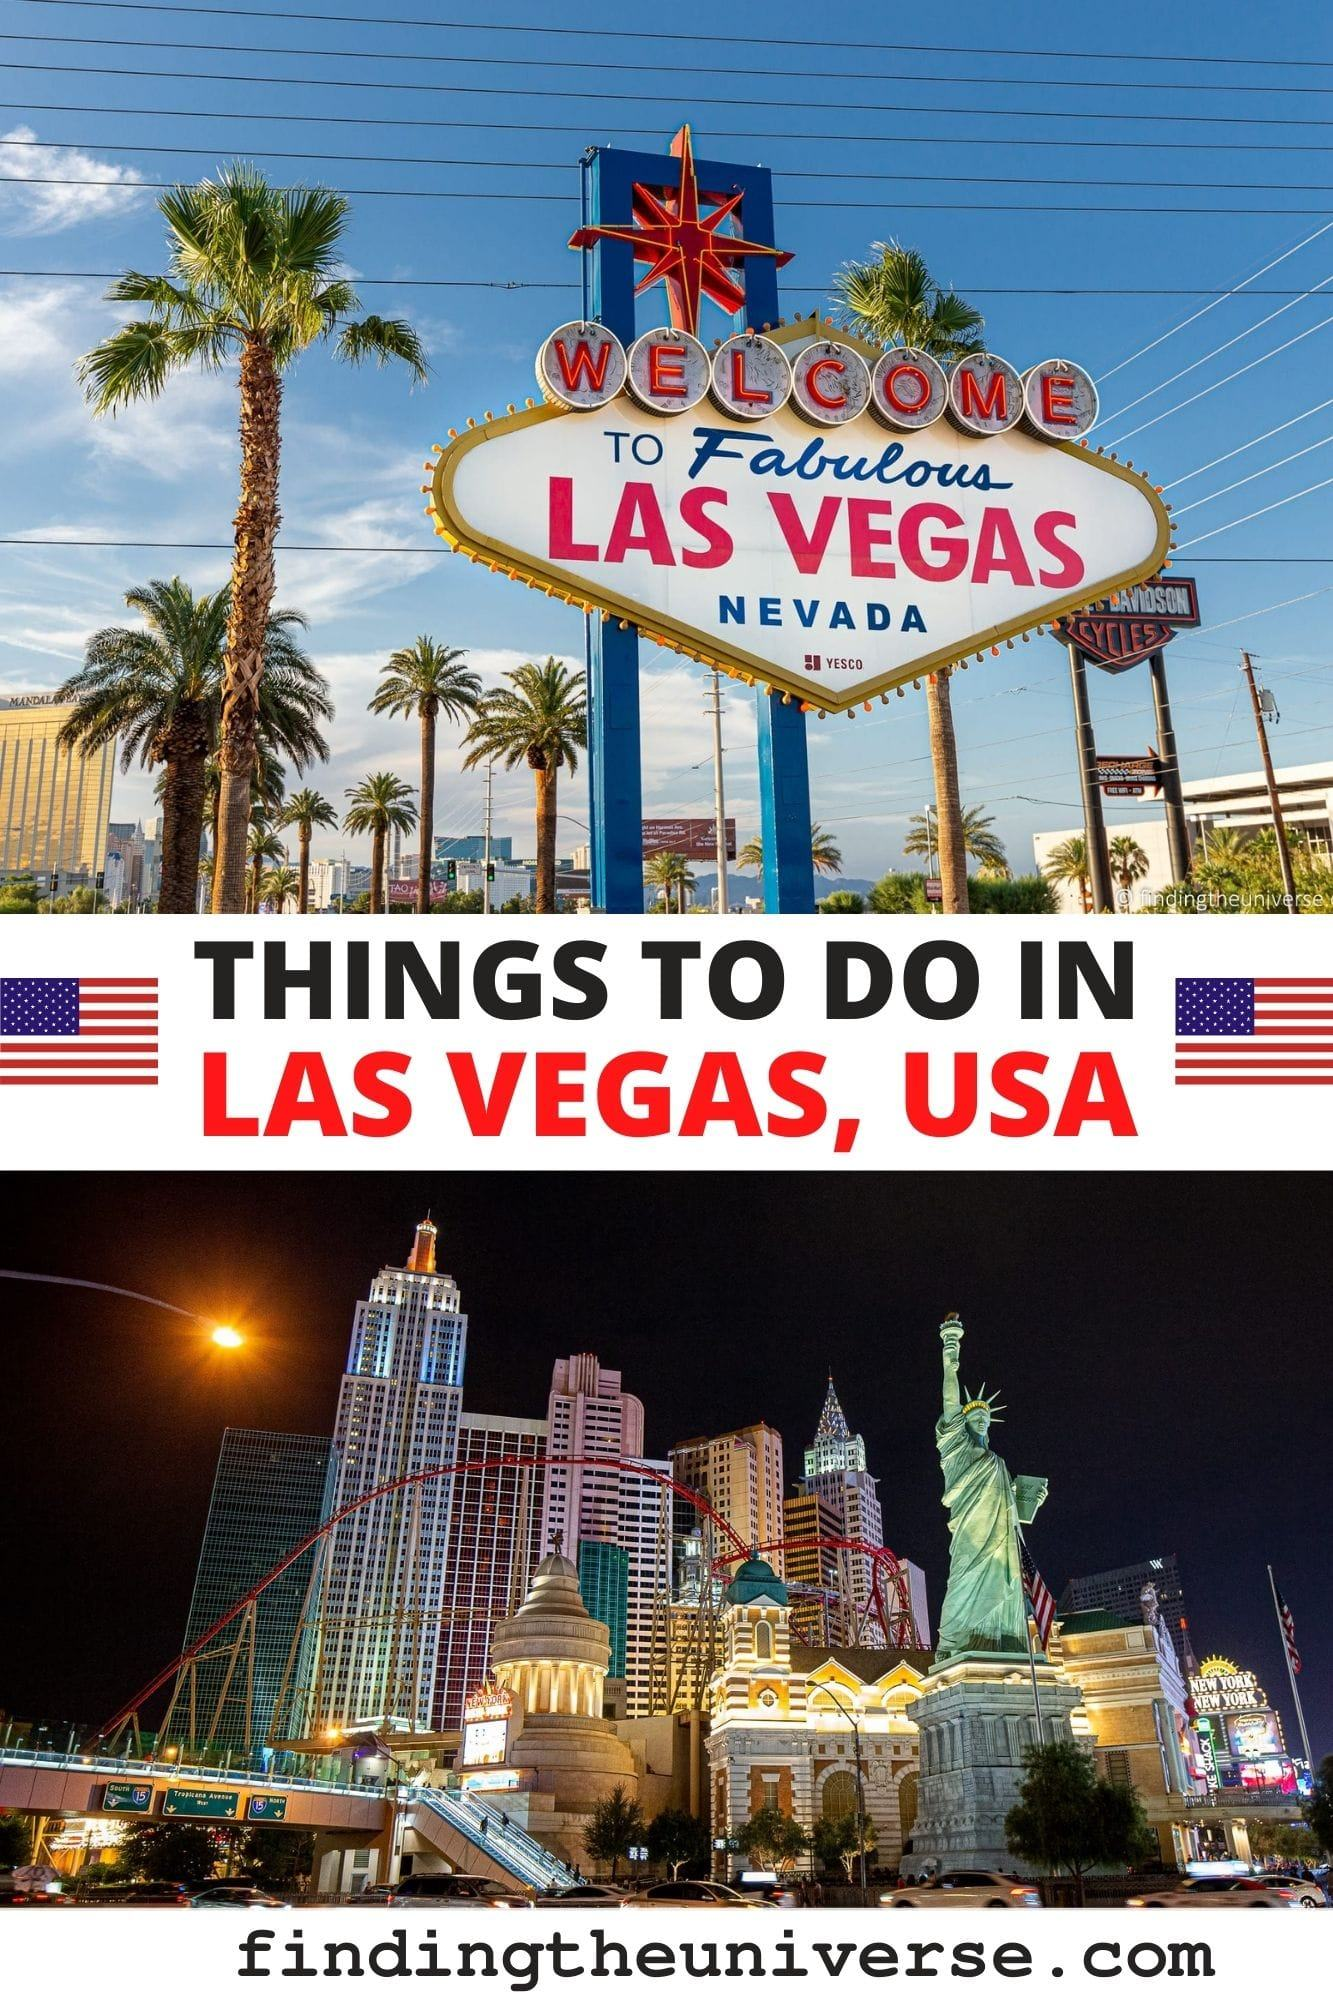 Detailed guide to all the best things to do in Las Vegas. Includes what to see and do, tips on saving money, where to stay and more!